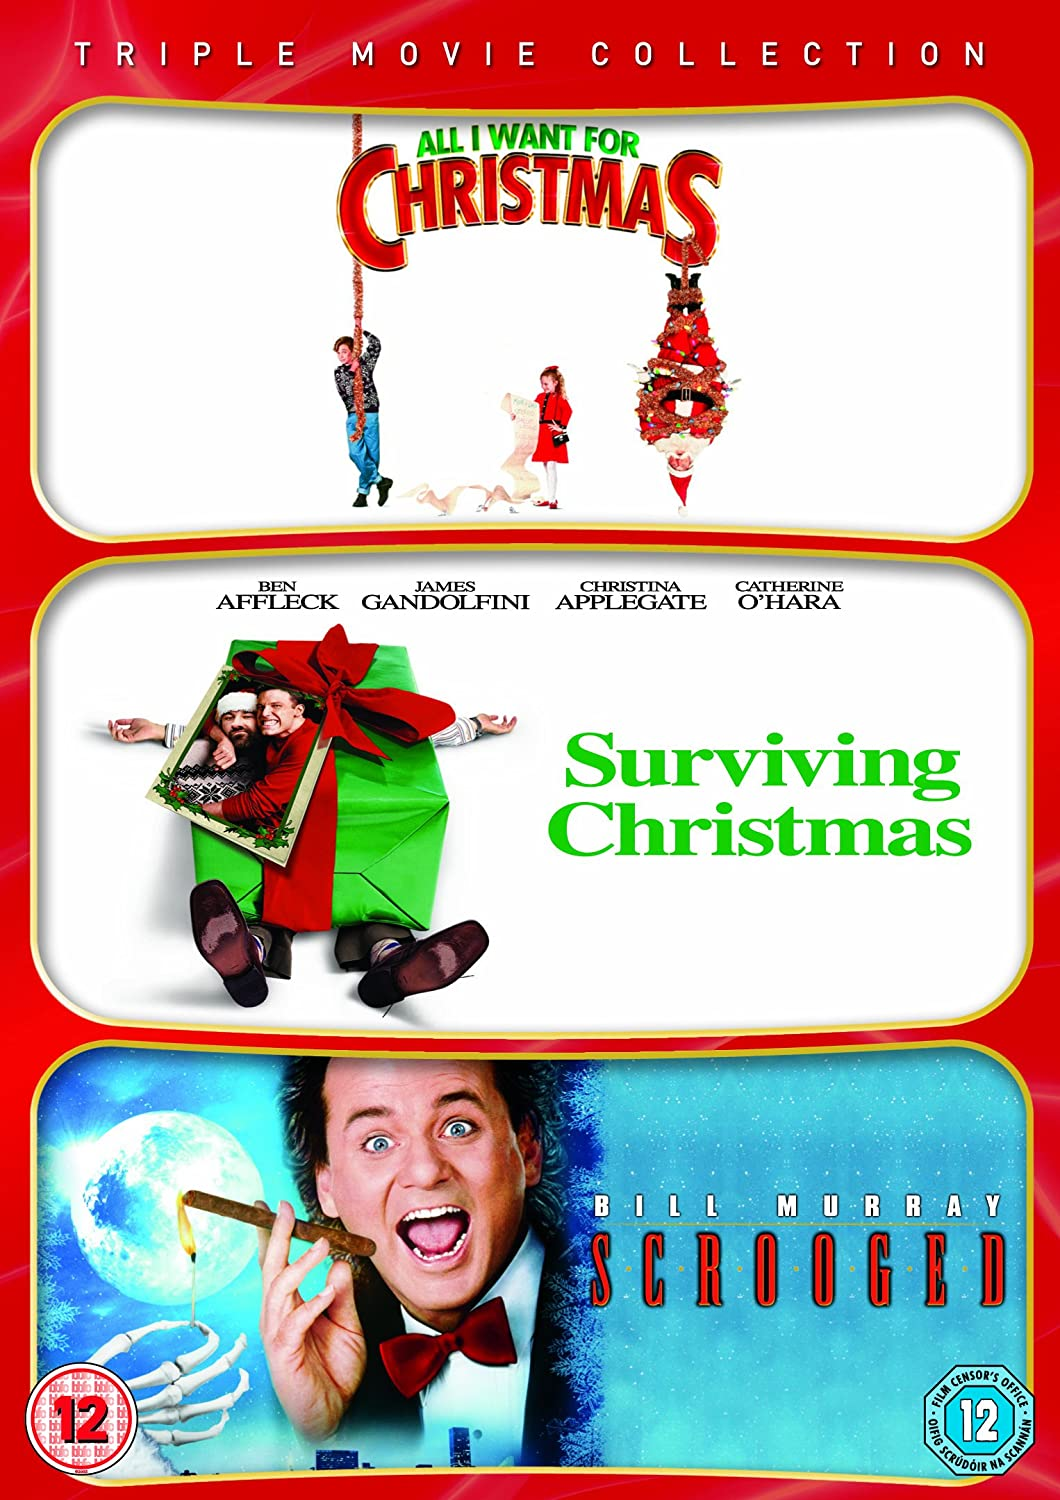 All I Want For Christmas / Surviving Christmas / Scrooged Triple ...